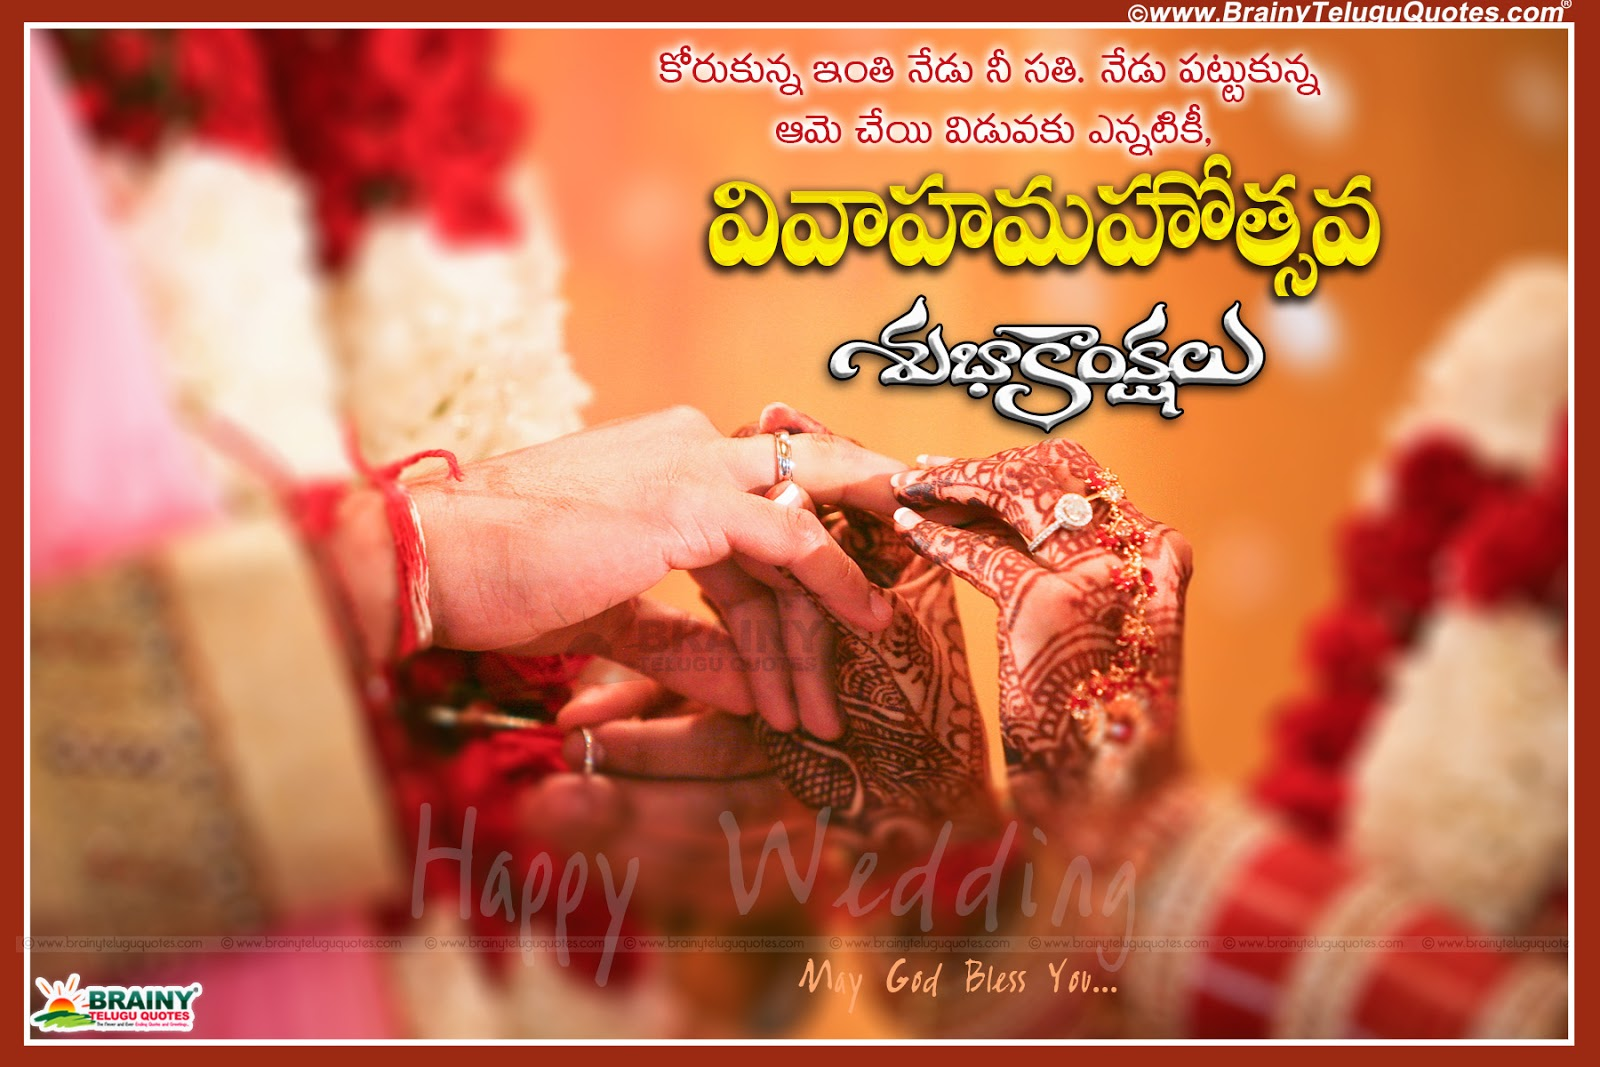 Happy Marriage Day Pelli Roju Greetings And Quotes In Telugu With